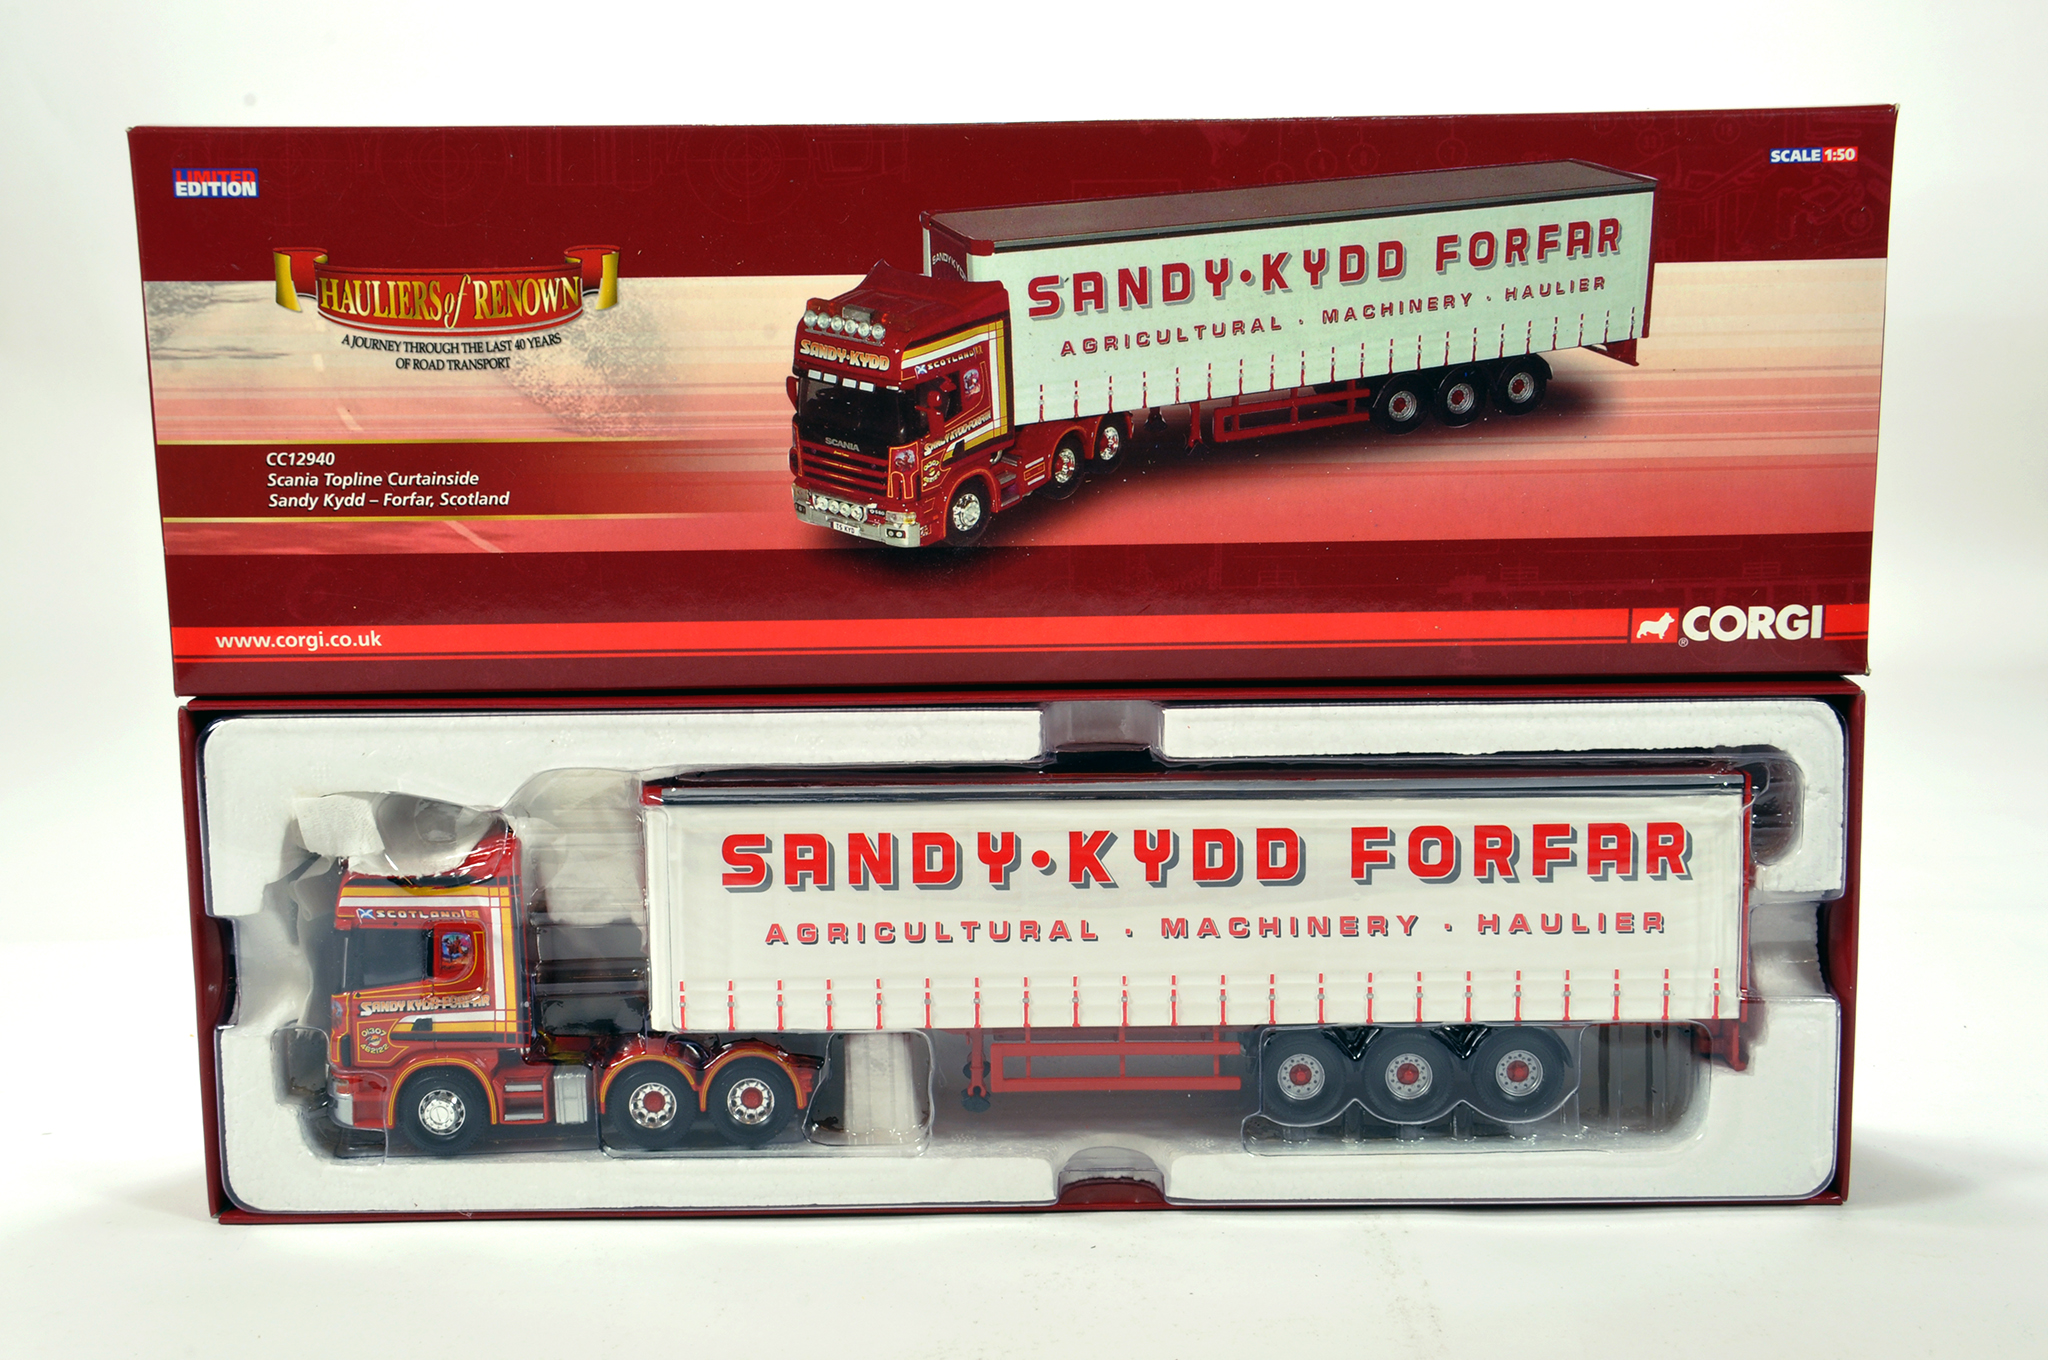 Lot 26 - Corgi 1/50 diecast truck issue comprising No. CC12940 Scania Topline Curtainside in livery of